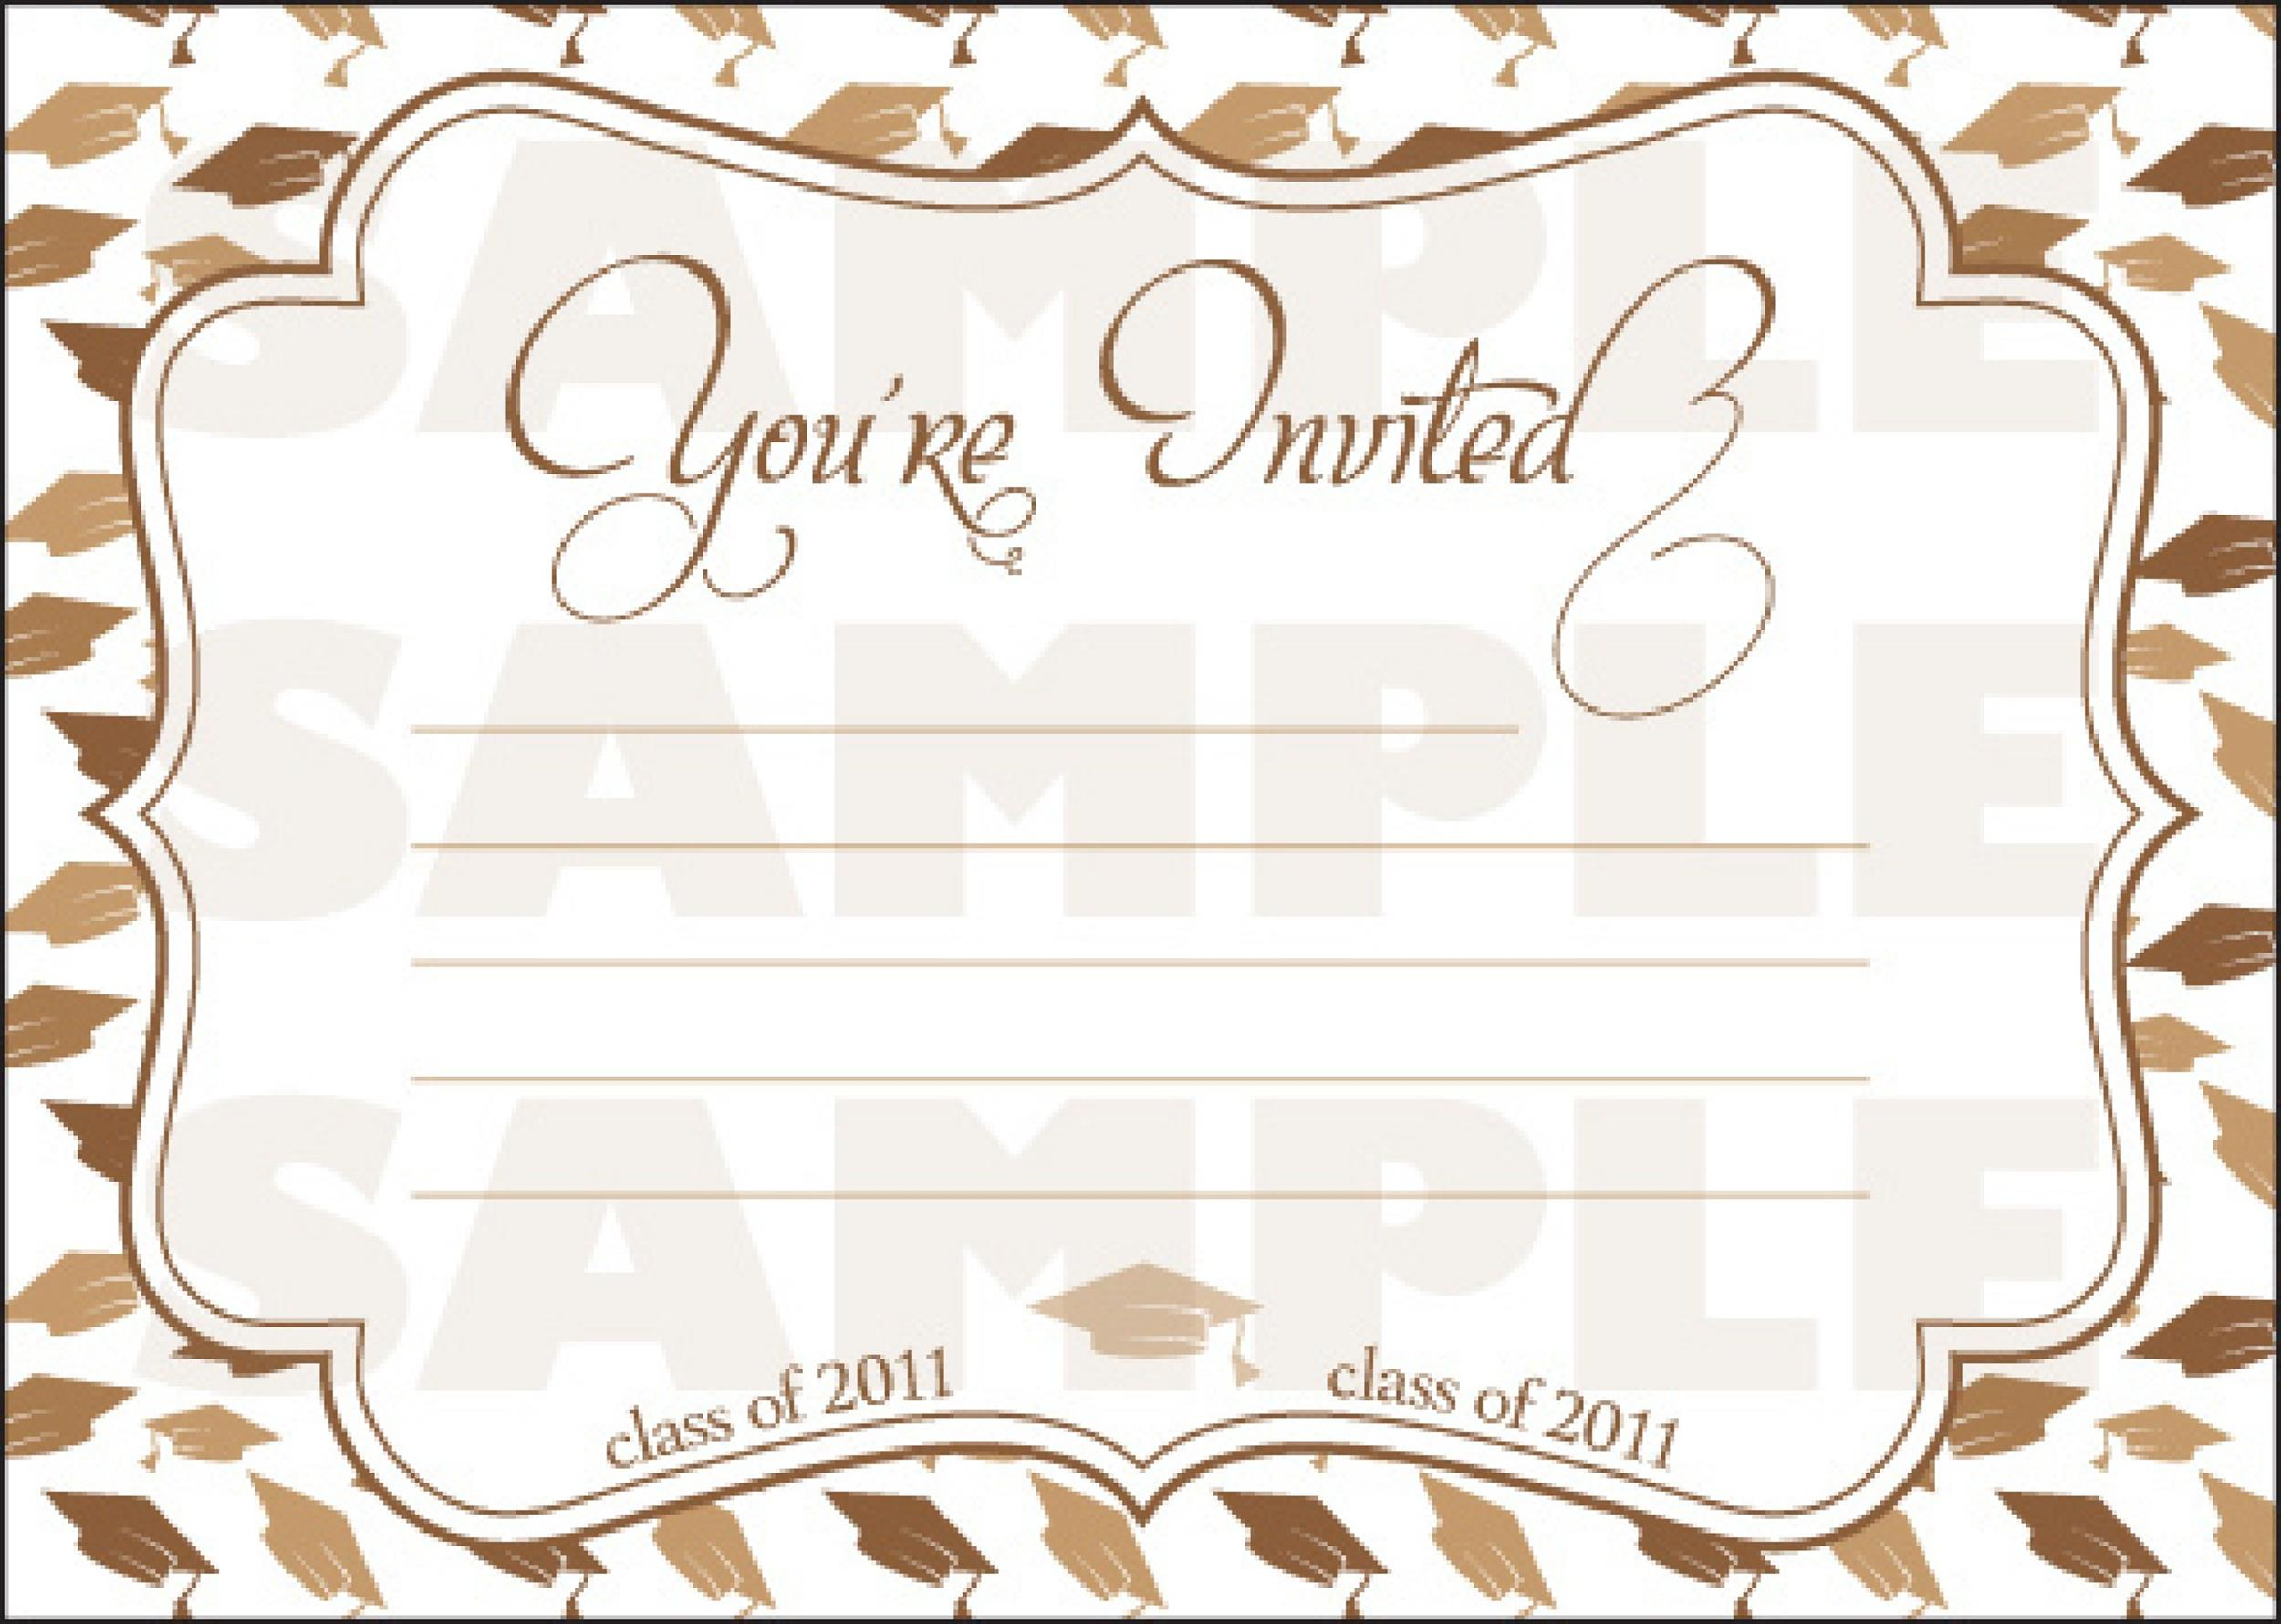 40+ FREE Graduation Invitation Templates - Template Lab - Invitations Templates